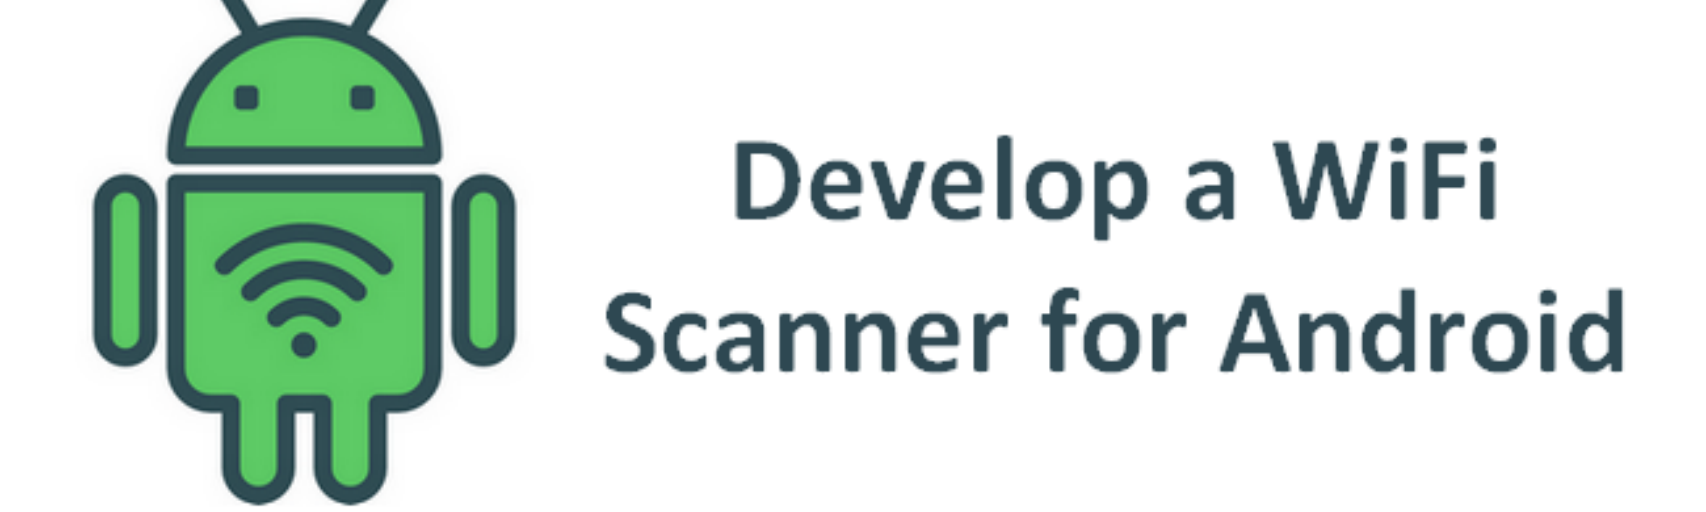 Develop a WiFi Scanner for Android - Sylvain Saurel - Medium